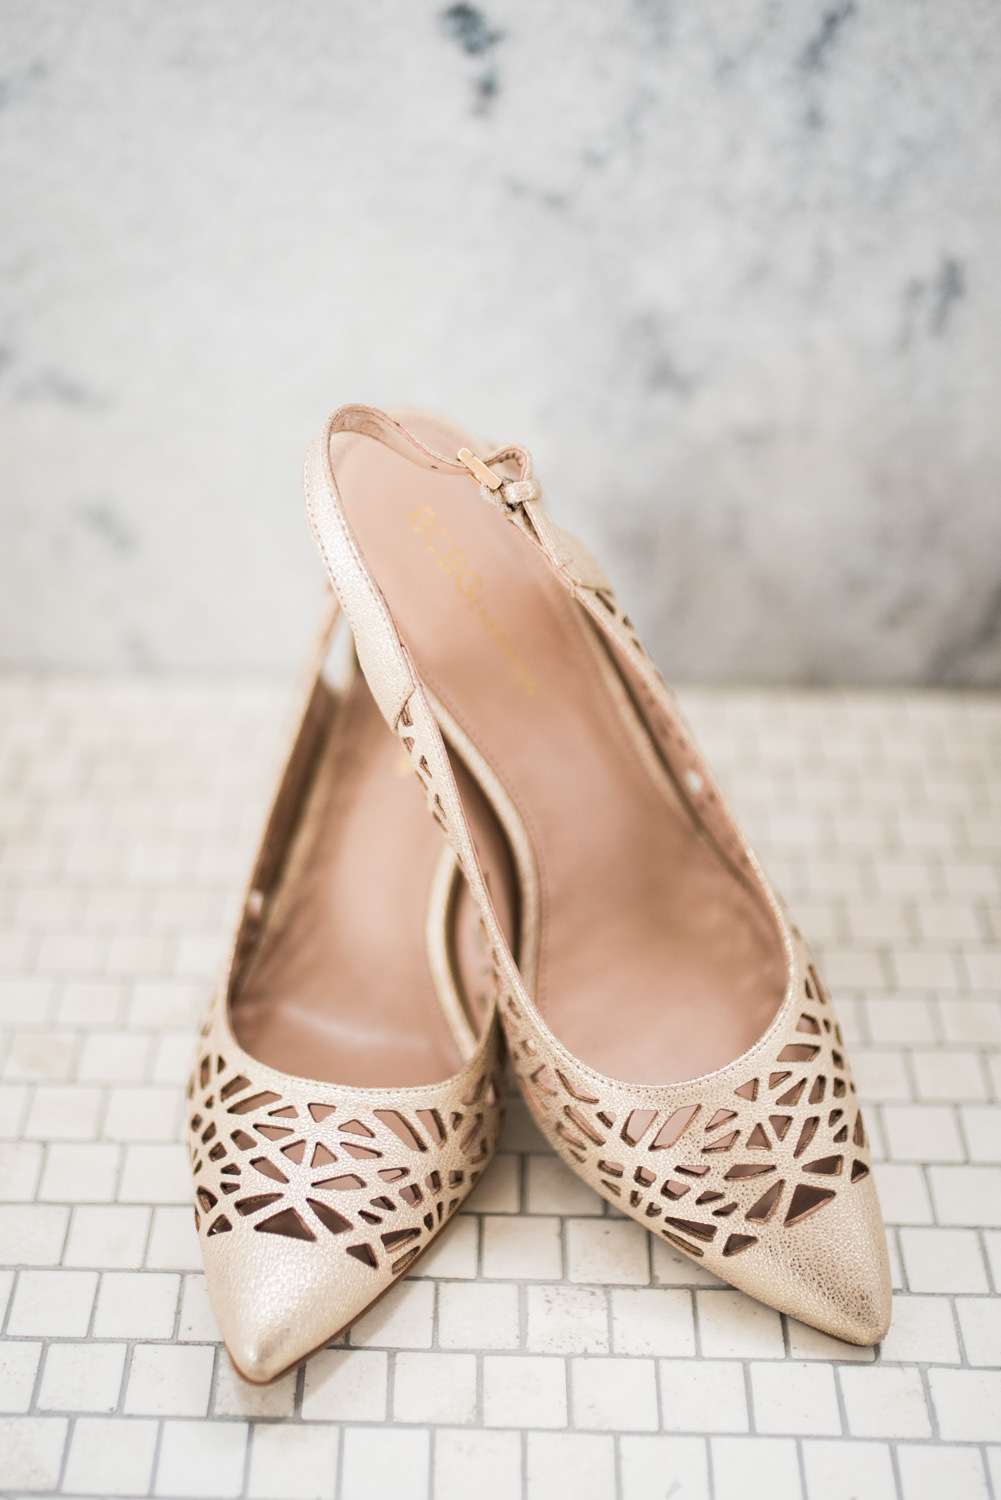 athens-wedding-shoes-3.jpg